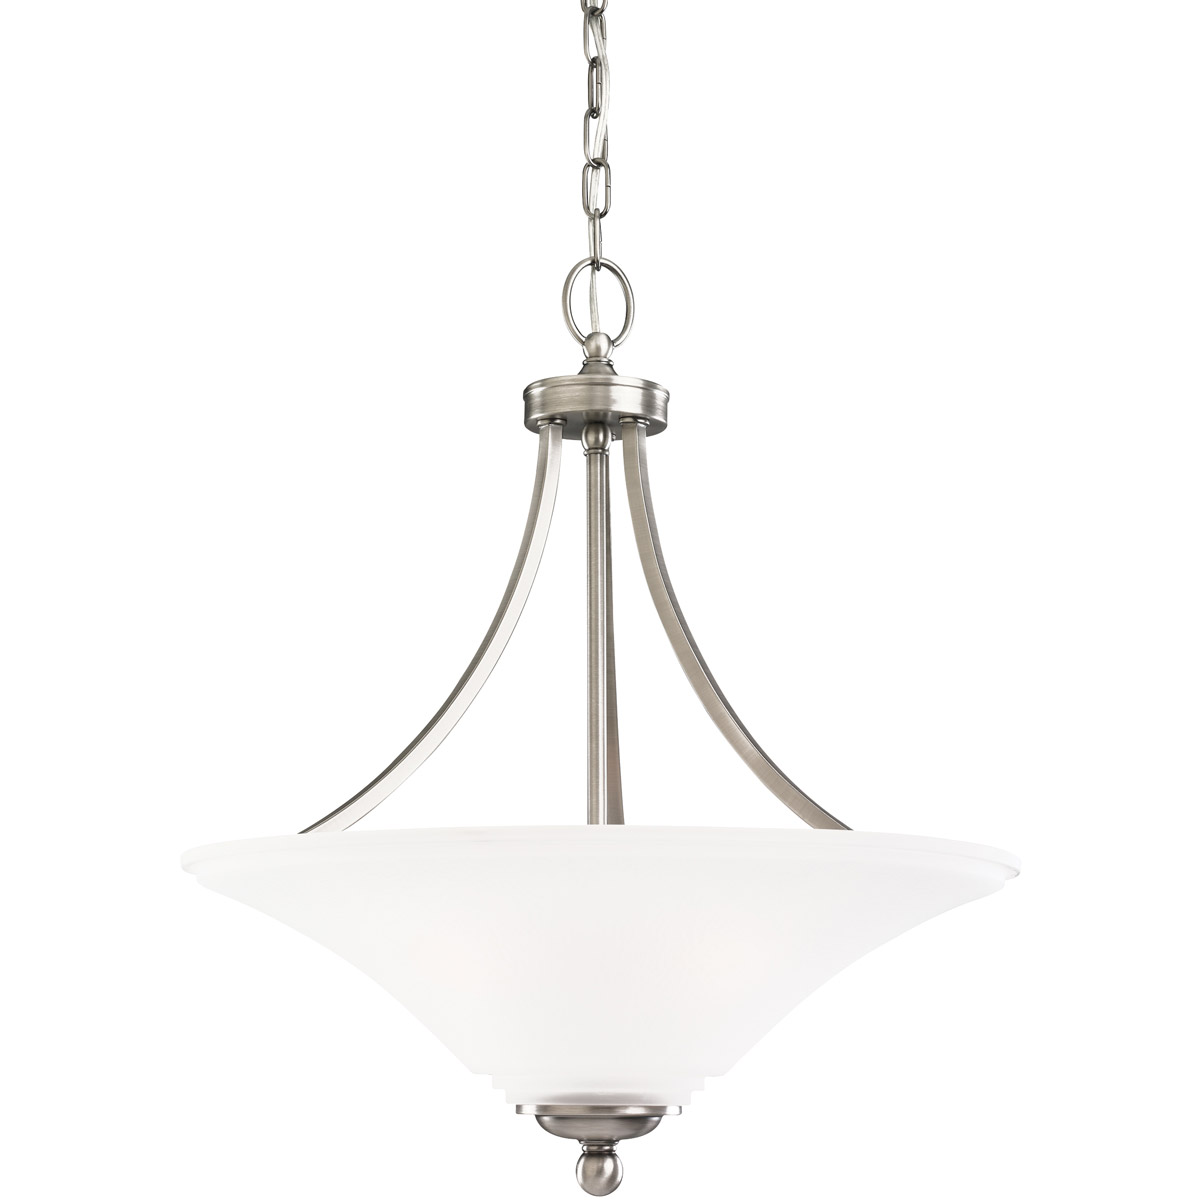 Sea Gull 65376-965 Somerton 3 Light 21 inch Antique Brushed Nickel Pendant Ceiling Light in Satin Etched Glass, Standard photo